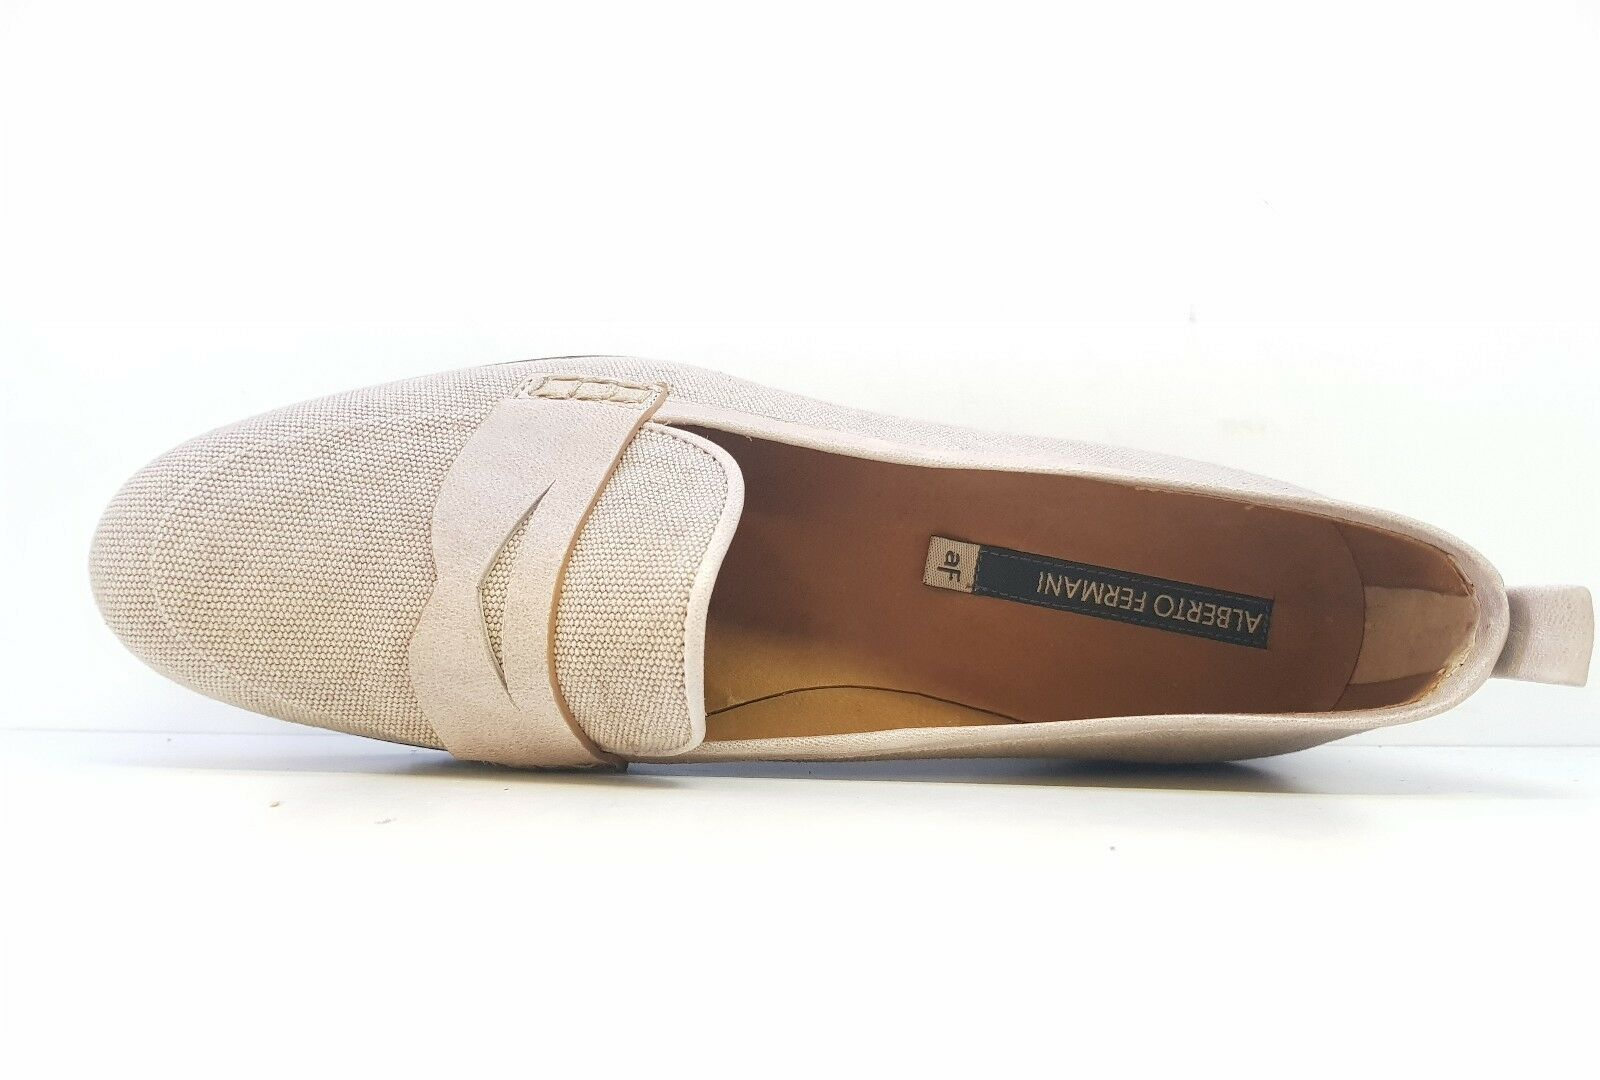 ALBERTO FERMANI LADIES HEEL LOAFERS SIZE EU 37 37 37 6e5aa5